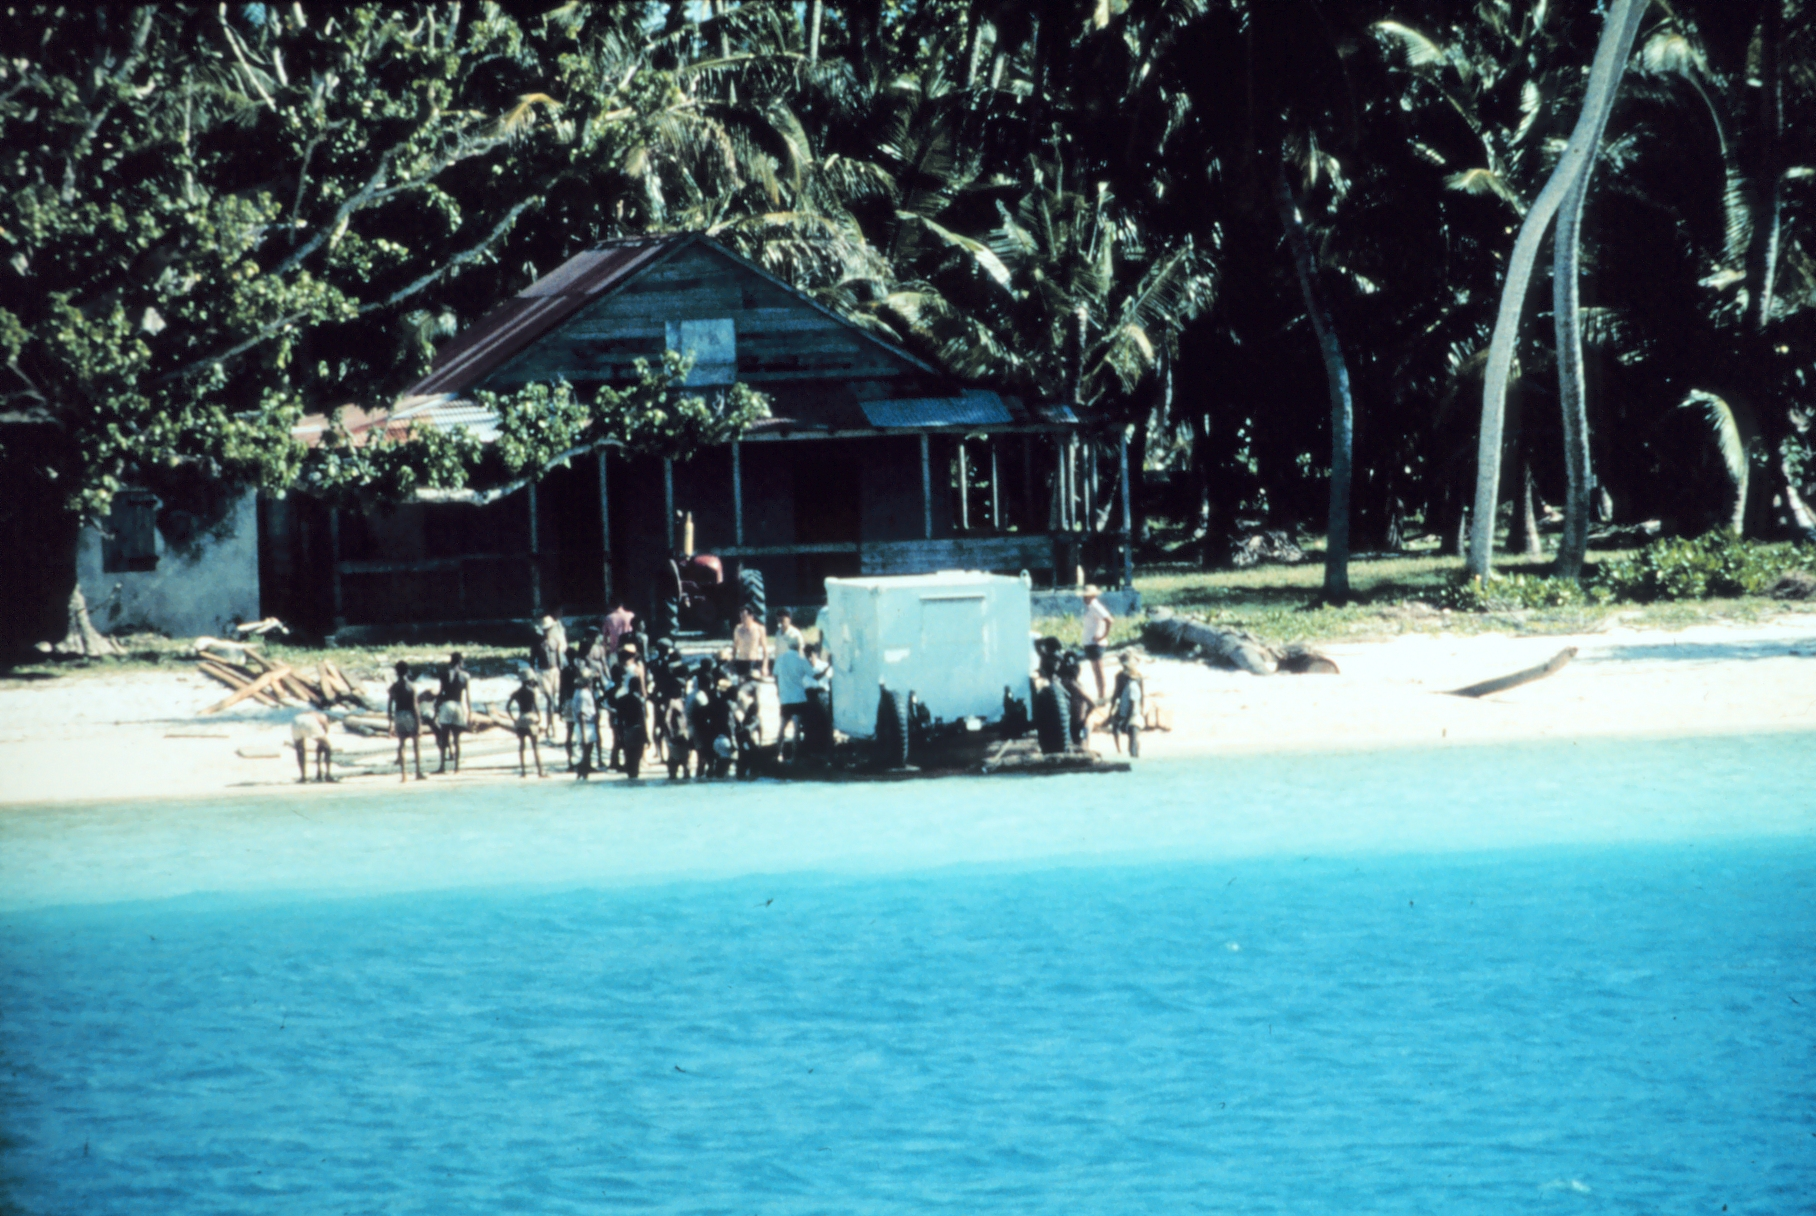 Erased, Pt. 2: The incredible story of the Diego Garcia US military base and the Chagossians